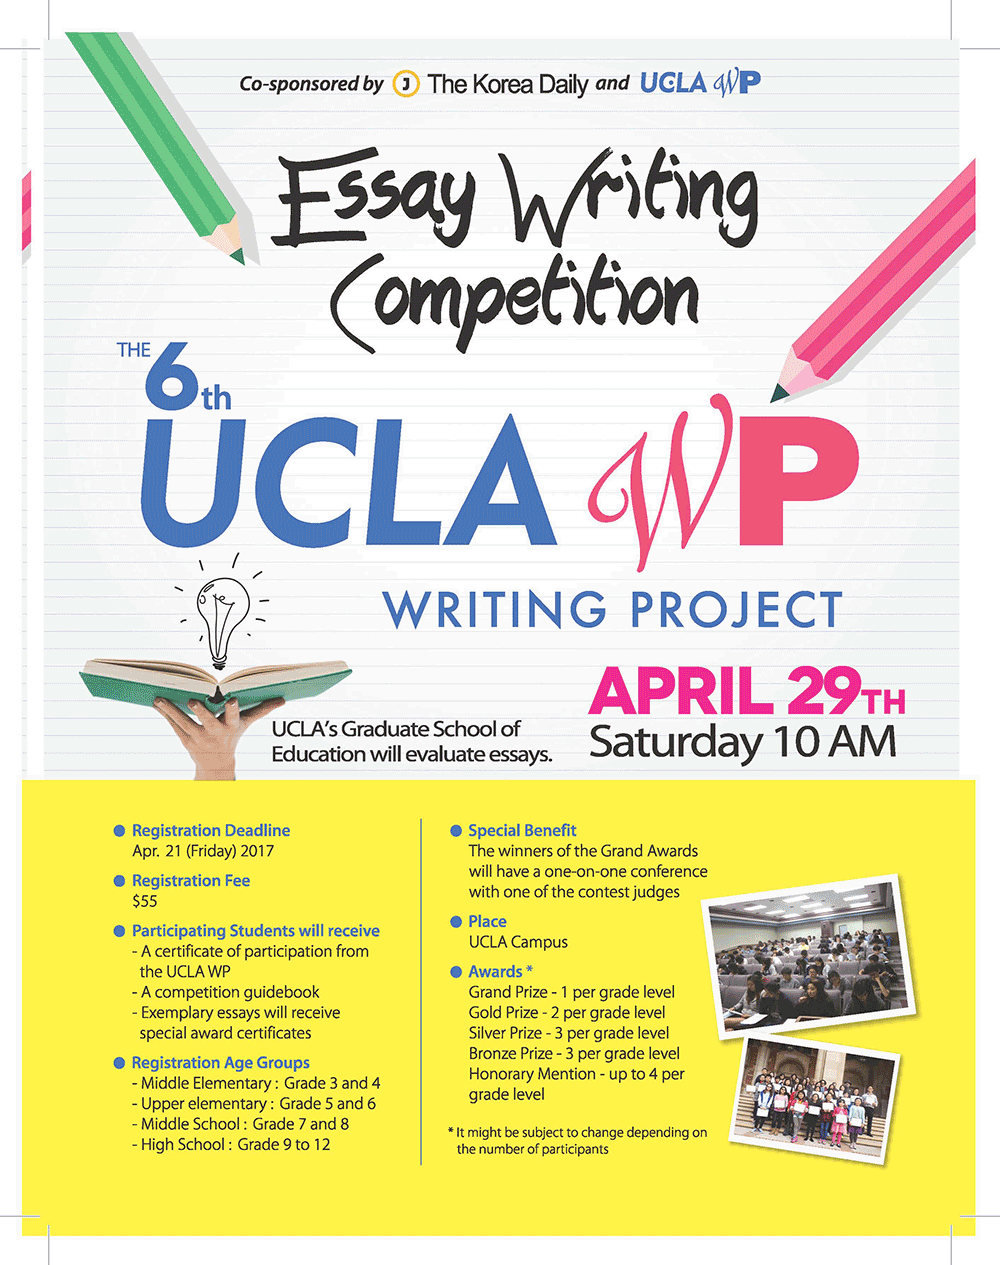 008 Essay Writing Contest Example Uclakoreandaily Incredible Competition For College Students By Essayhub Sample Mechanics Full